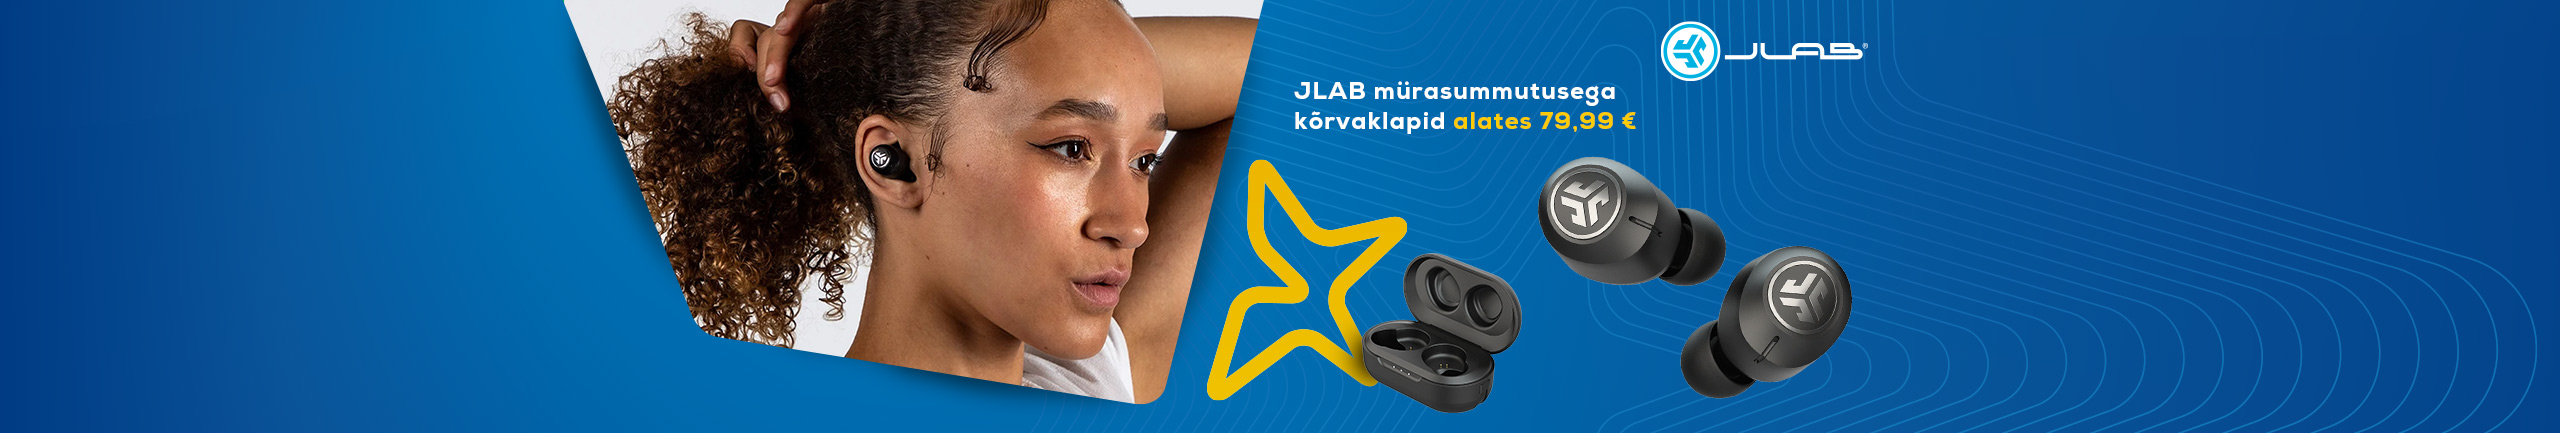 Jlab headphones with noise-cancellation starting from 79,99€